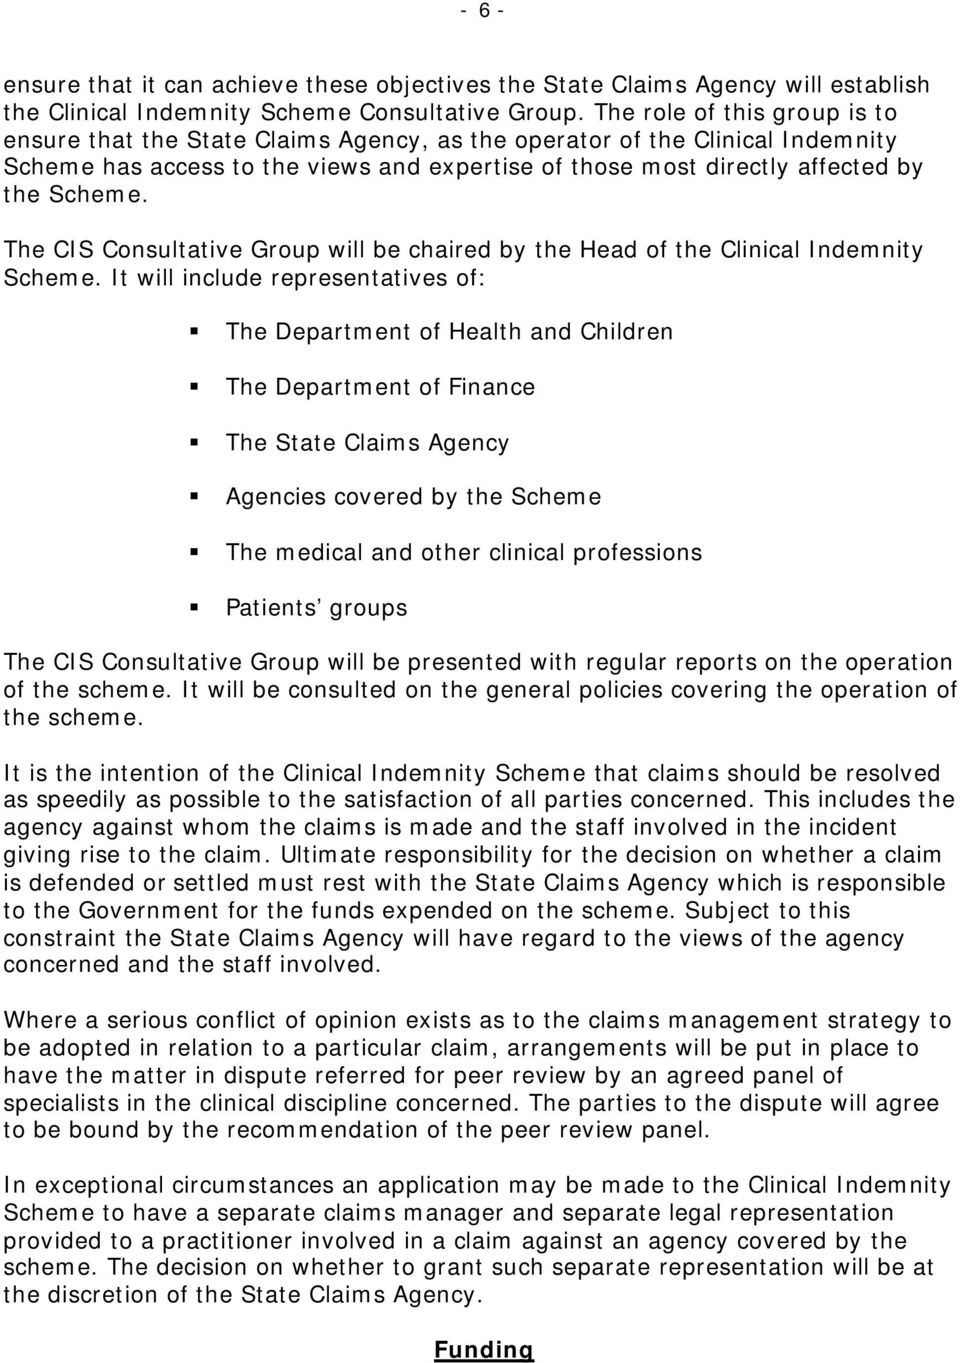 The CIS Consultative Group will be chaired by the Head of the Clinical Indemnity Scheme.